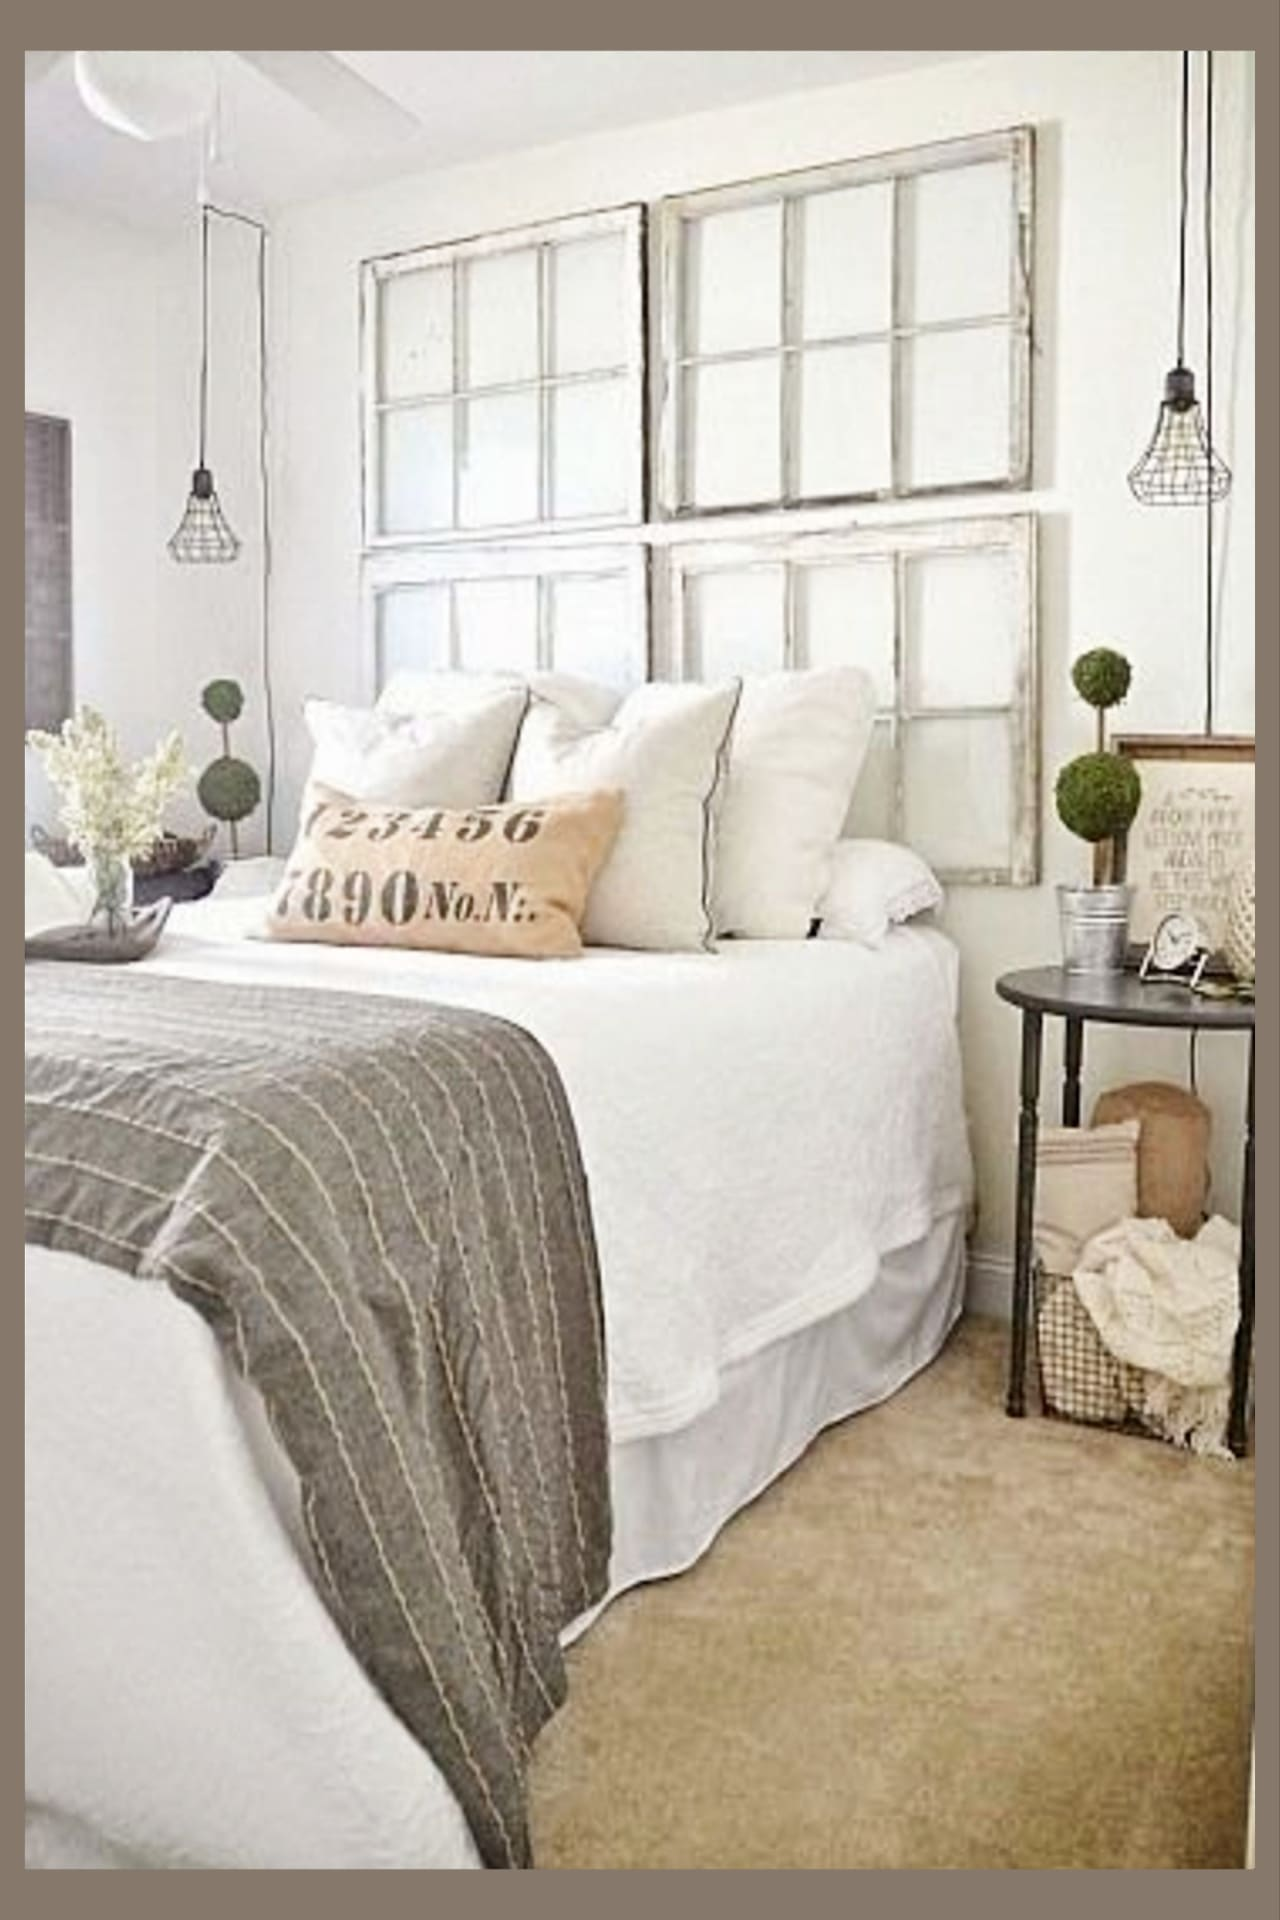 Farmhouse decor on a budget - farmhouse bedroom decorating ideas - use old farmhouse windows and window frames instead of a headboard on the wall behind your bed to get farmhouse look on a budget